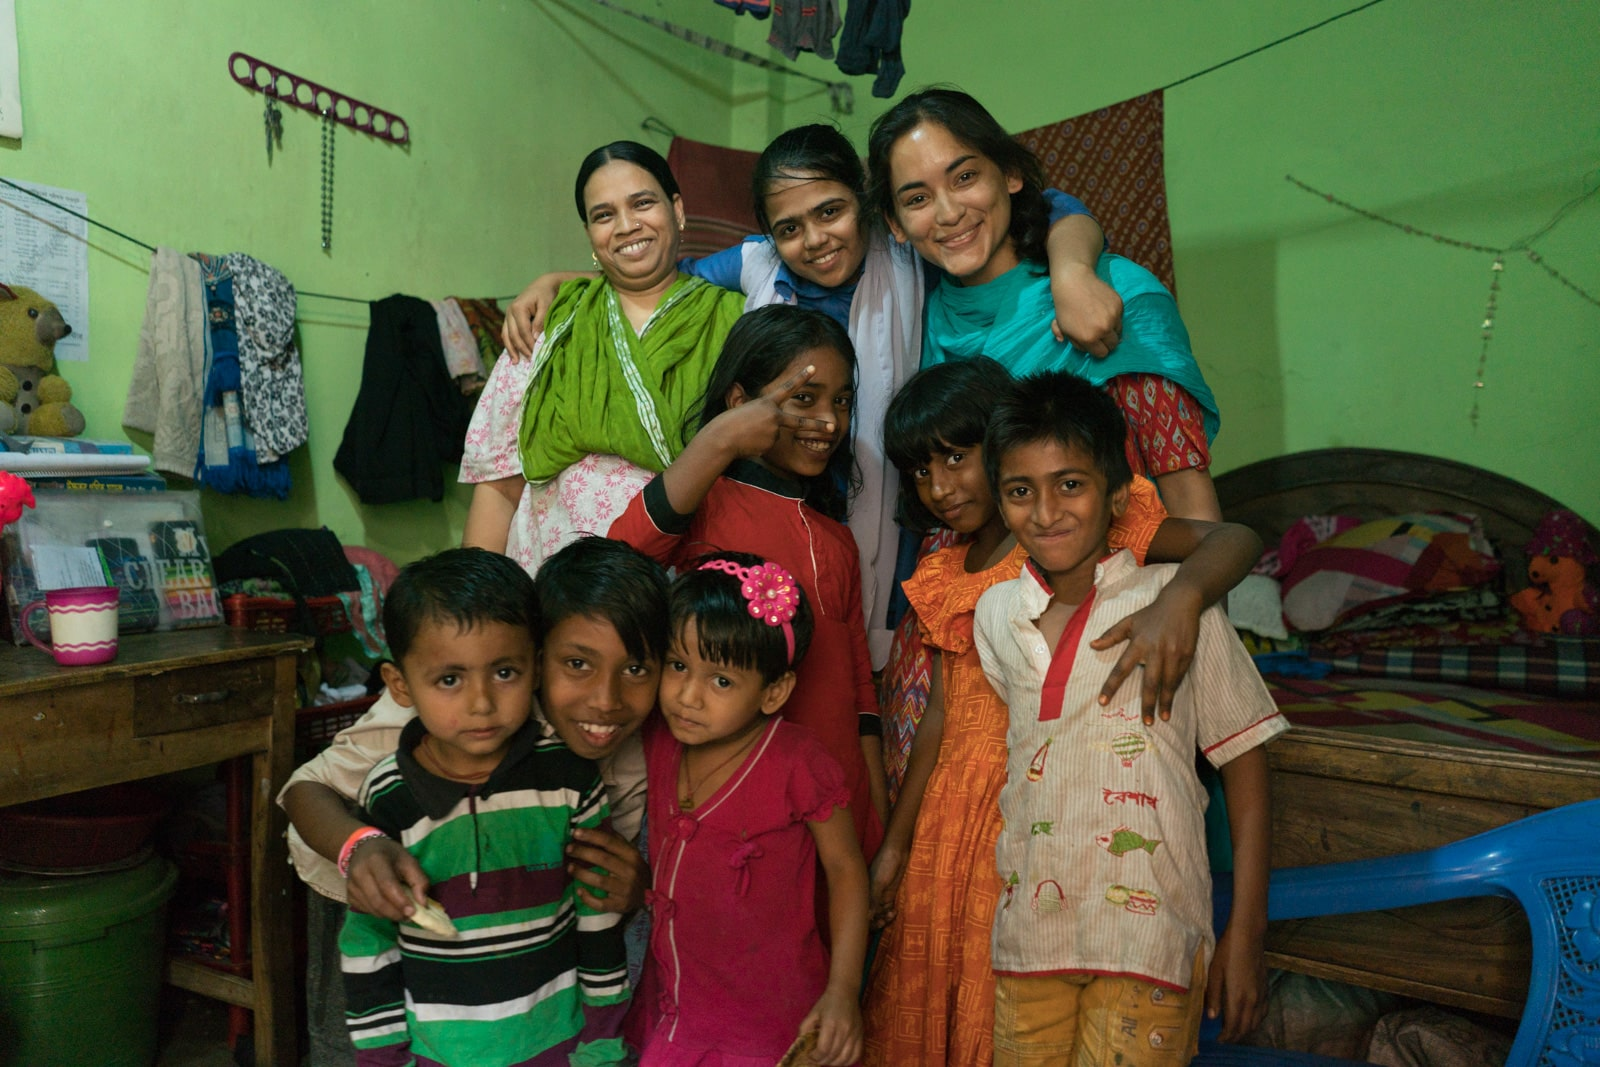 With a family in Dhaka, Bangladesh